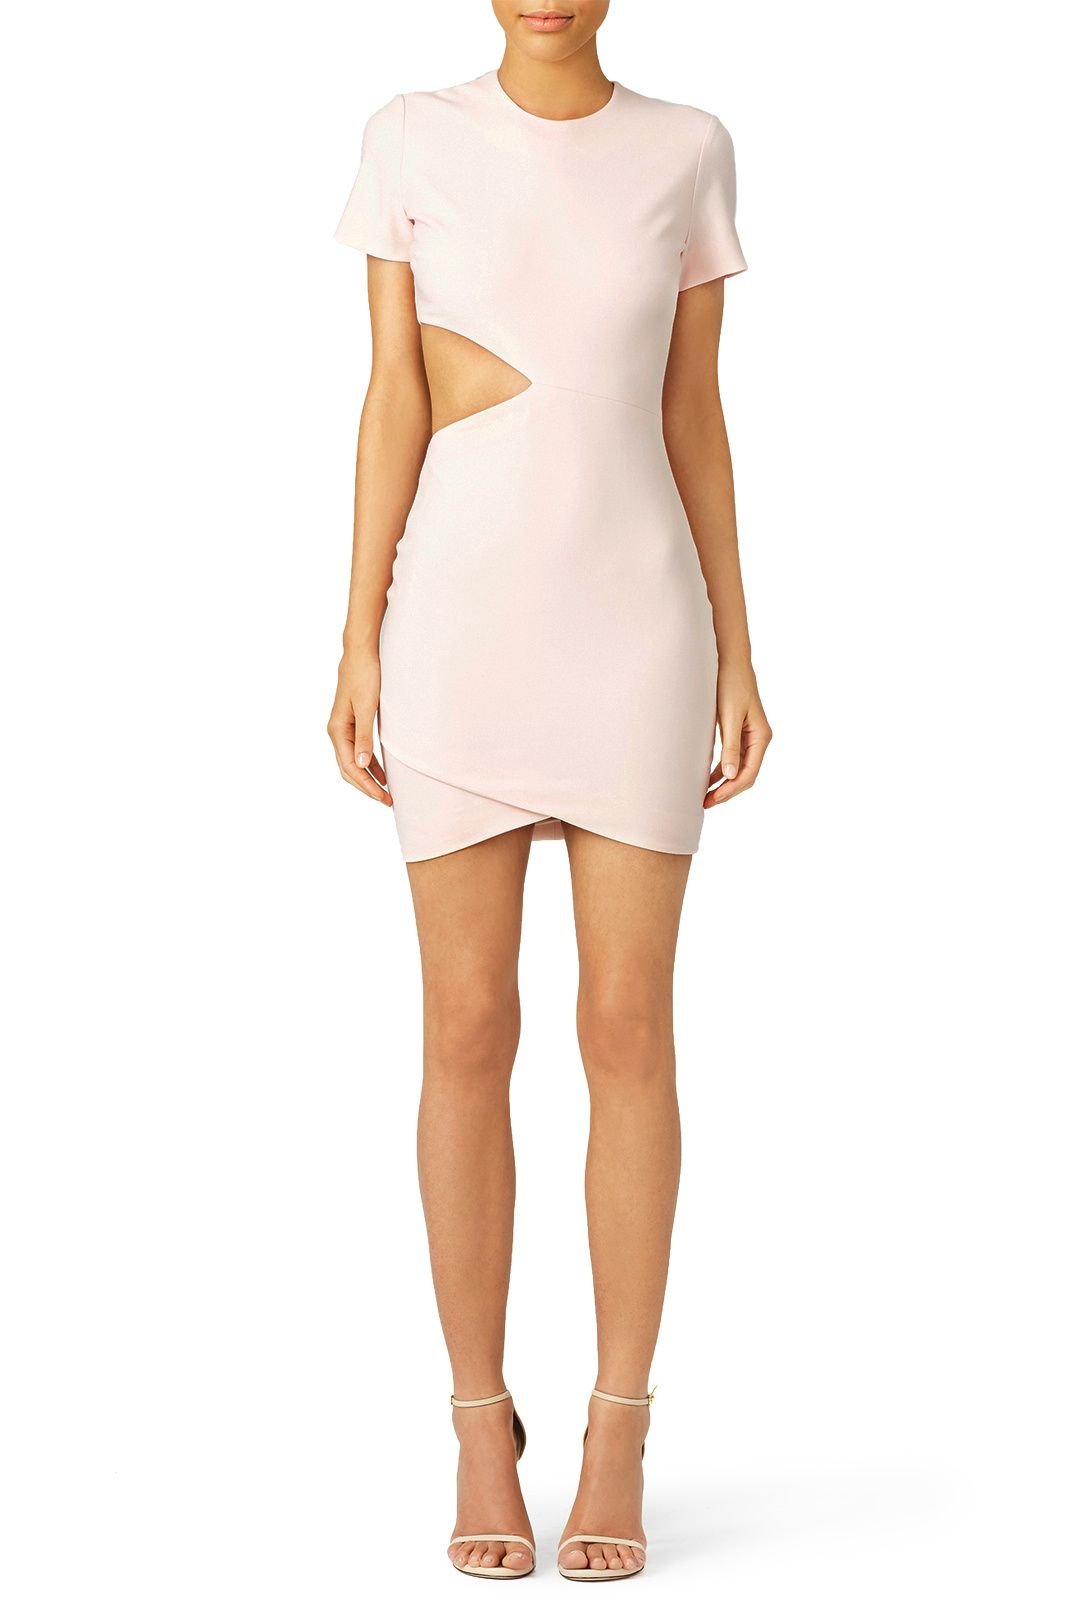 Pink dress hoco  Blush Aiala Dress  hoco  Pinterest  Metallic Sandals and Pink